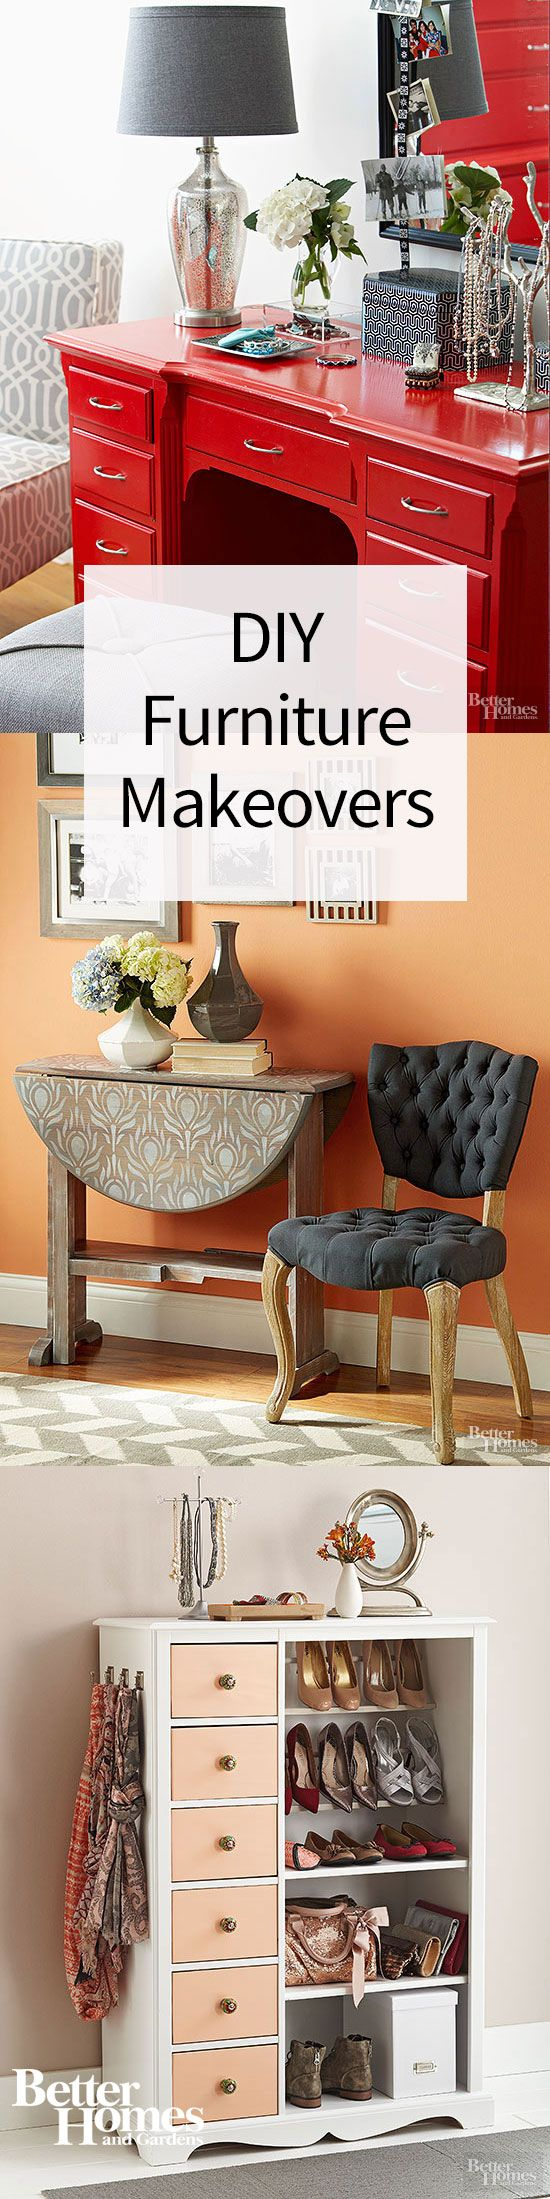 Best 25+ Restoring old furniture ideas on Pinterest | Restoring ...